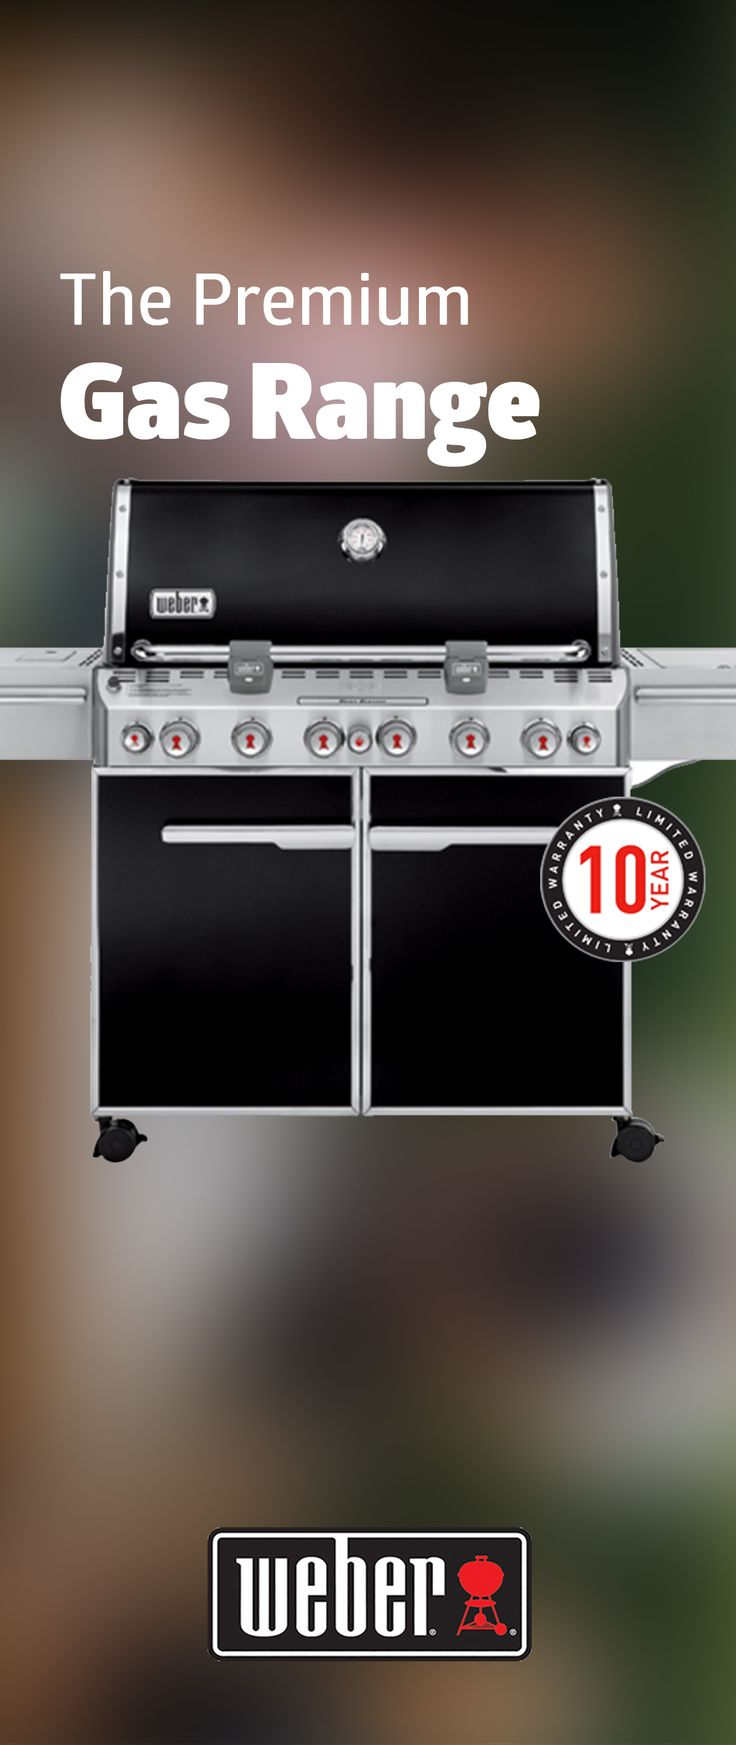 Here are some of our most delicious recipes specifically designed for our Premium Gas range.